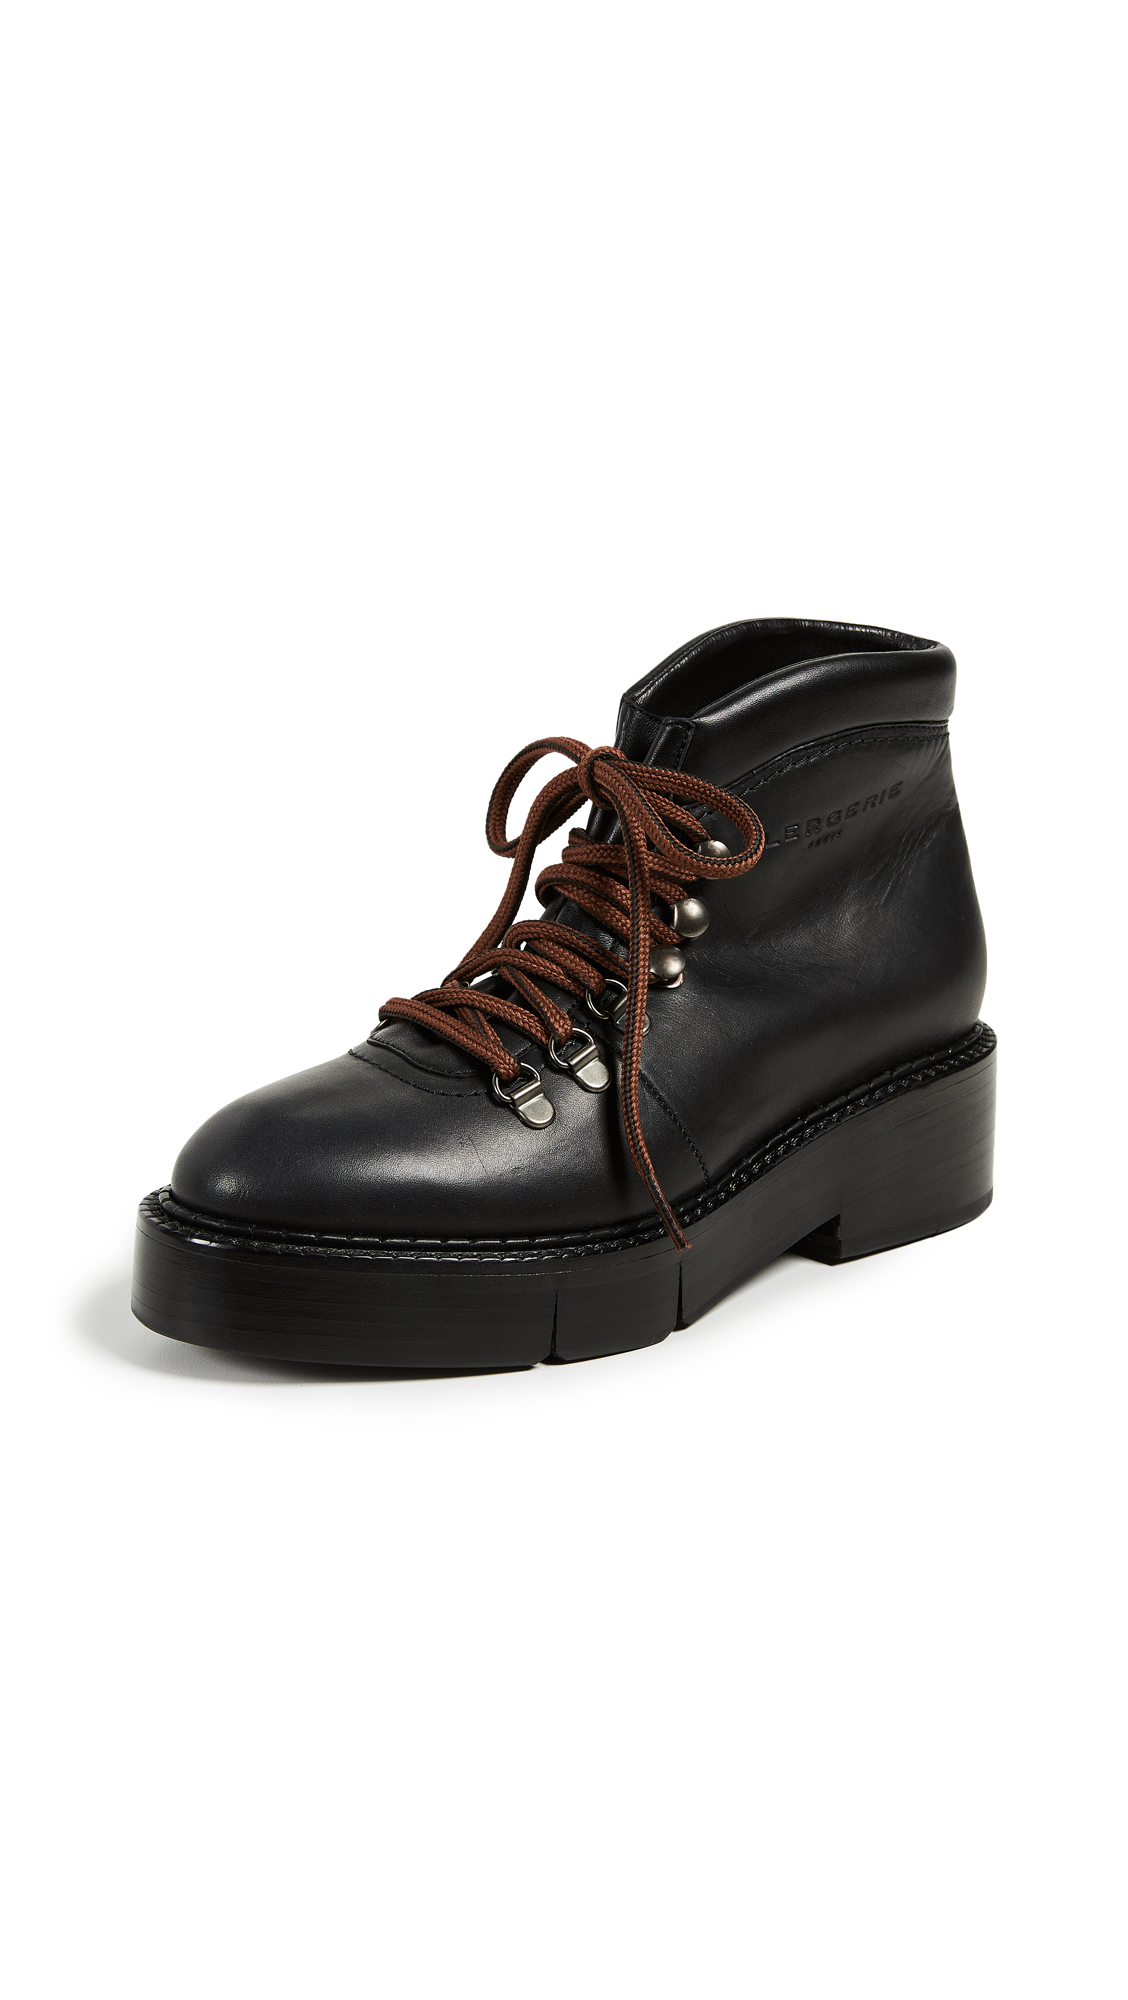 Robert Clergerie Celina Boots - Black